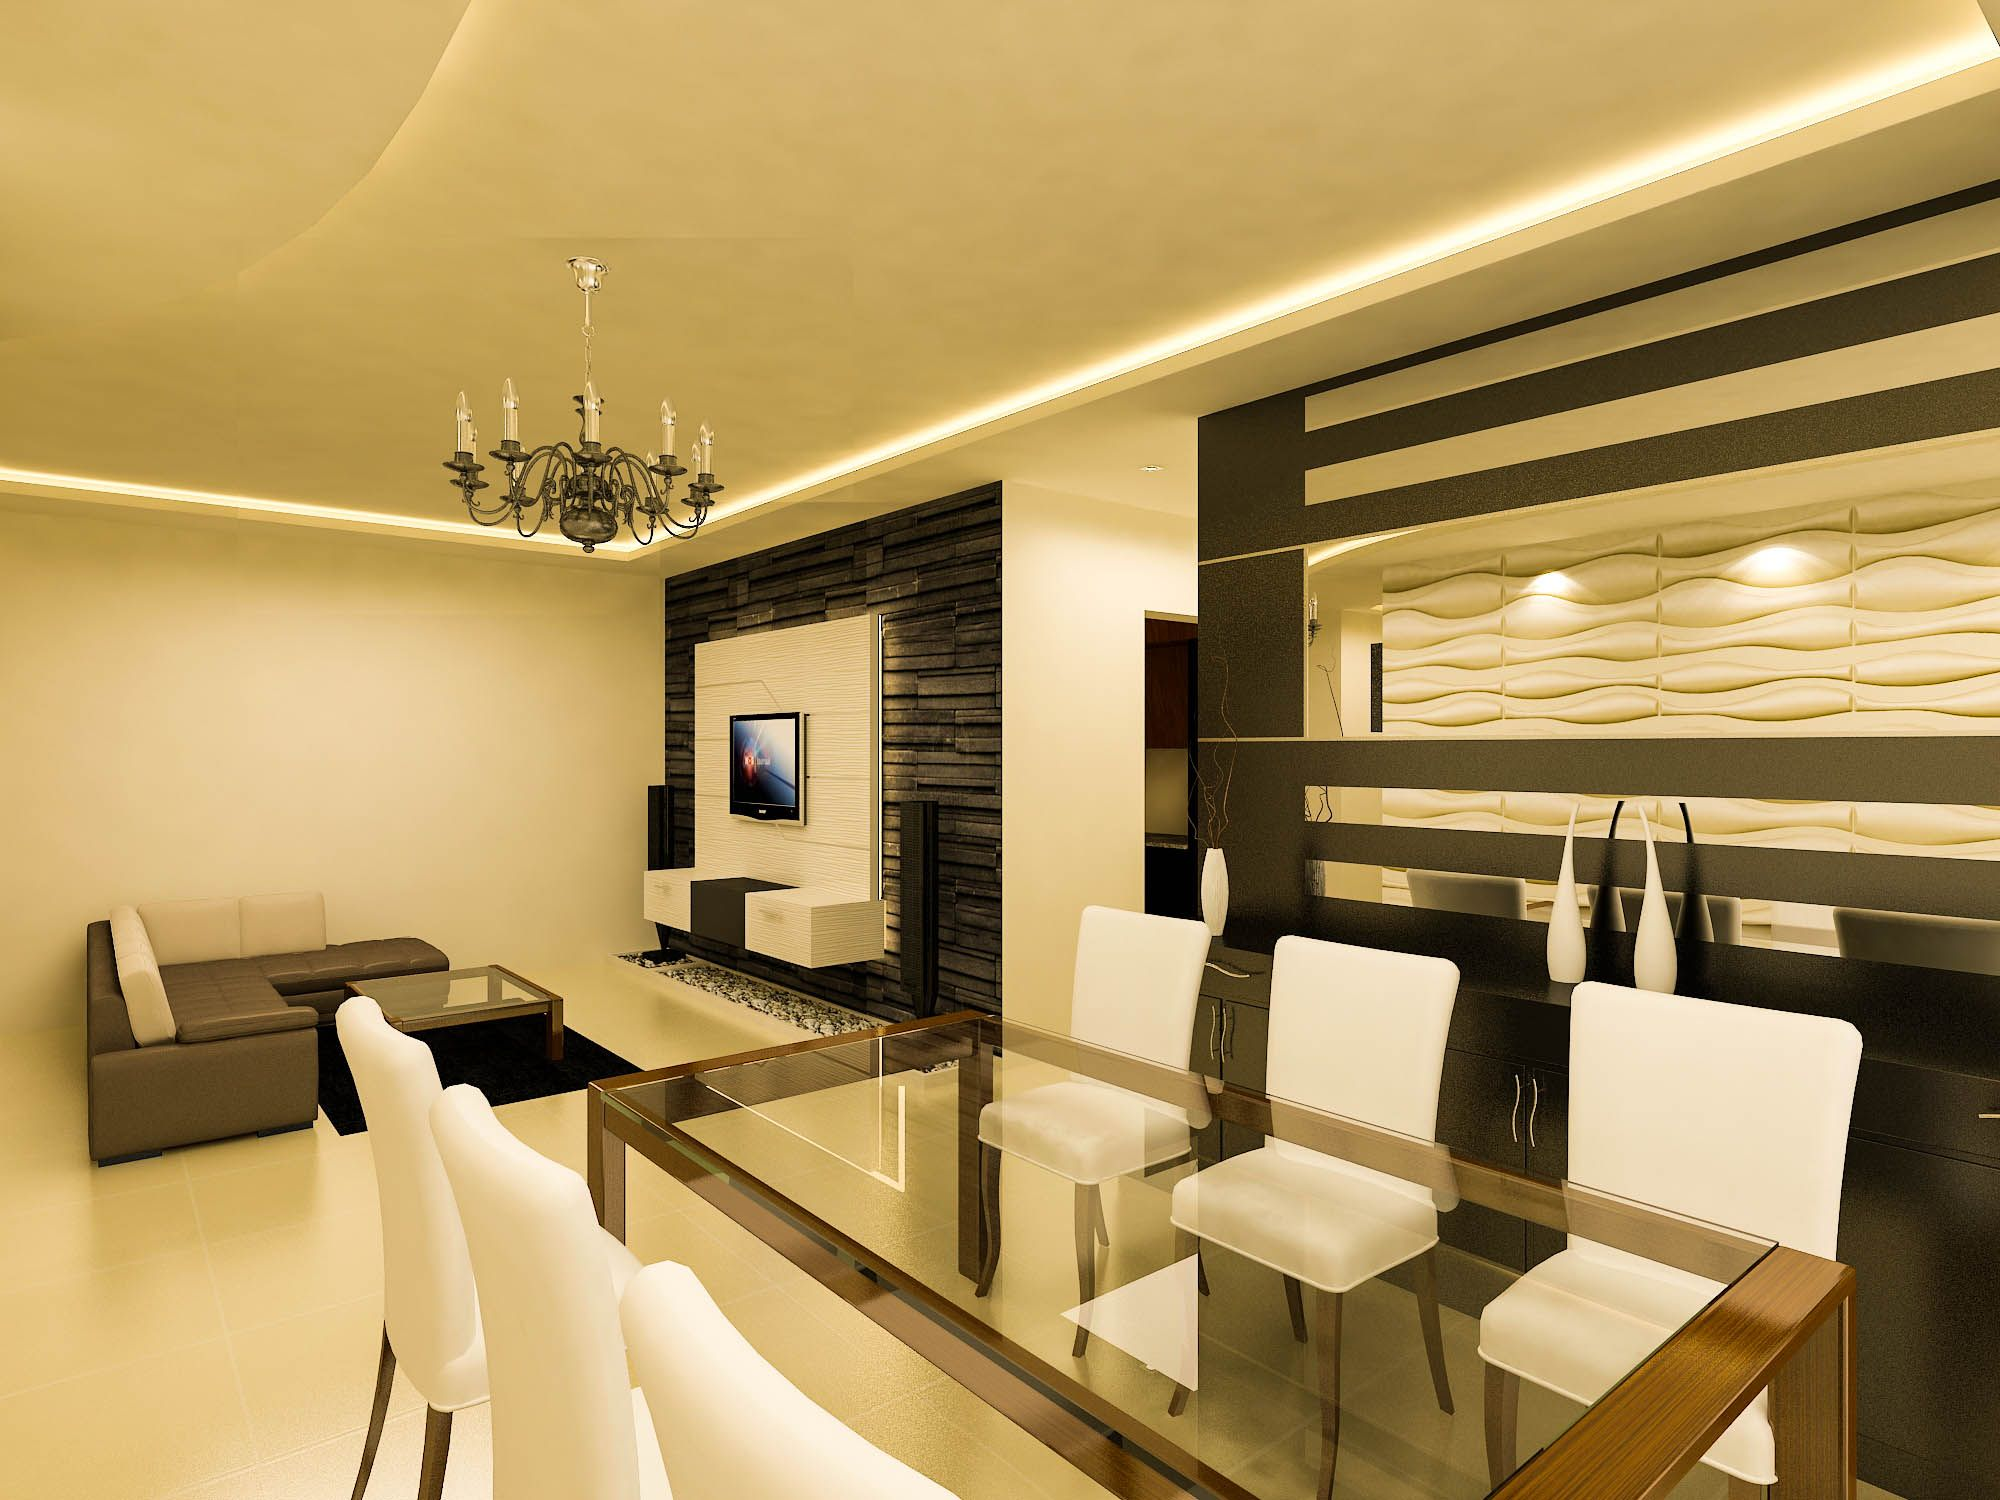 Living Room Designs For Apartments Unique A Living Room Design For The Sobha Classic Apartment In Bangalore Review